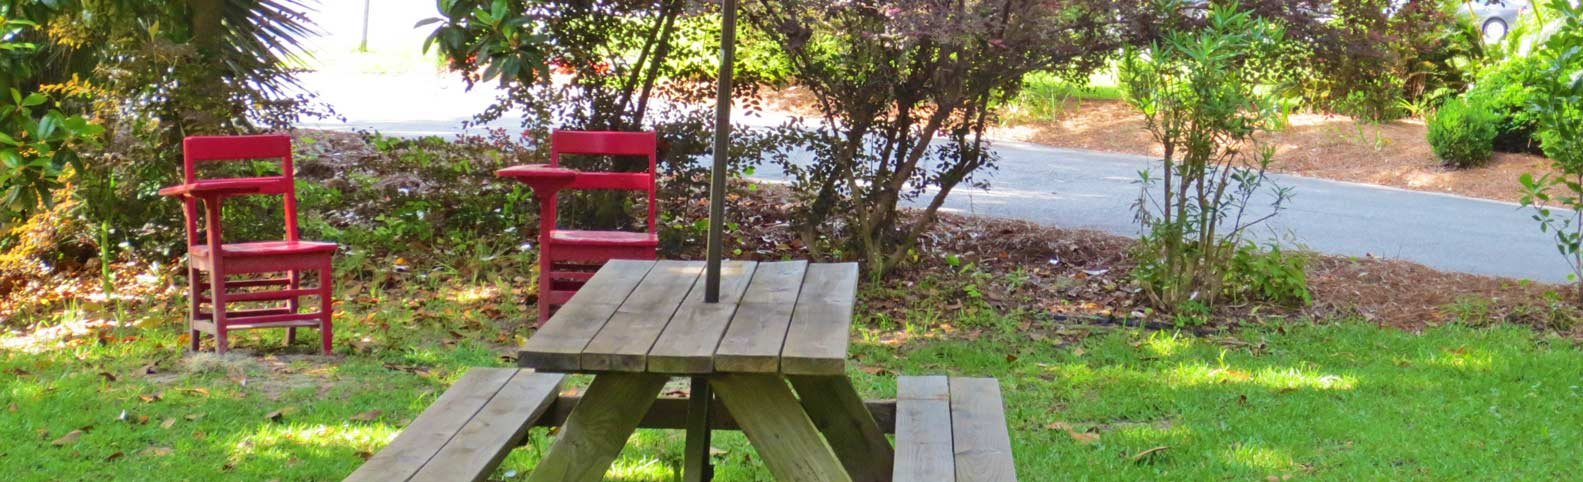 Childrens-Garden-picnic-table